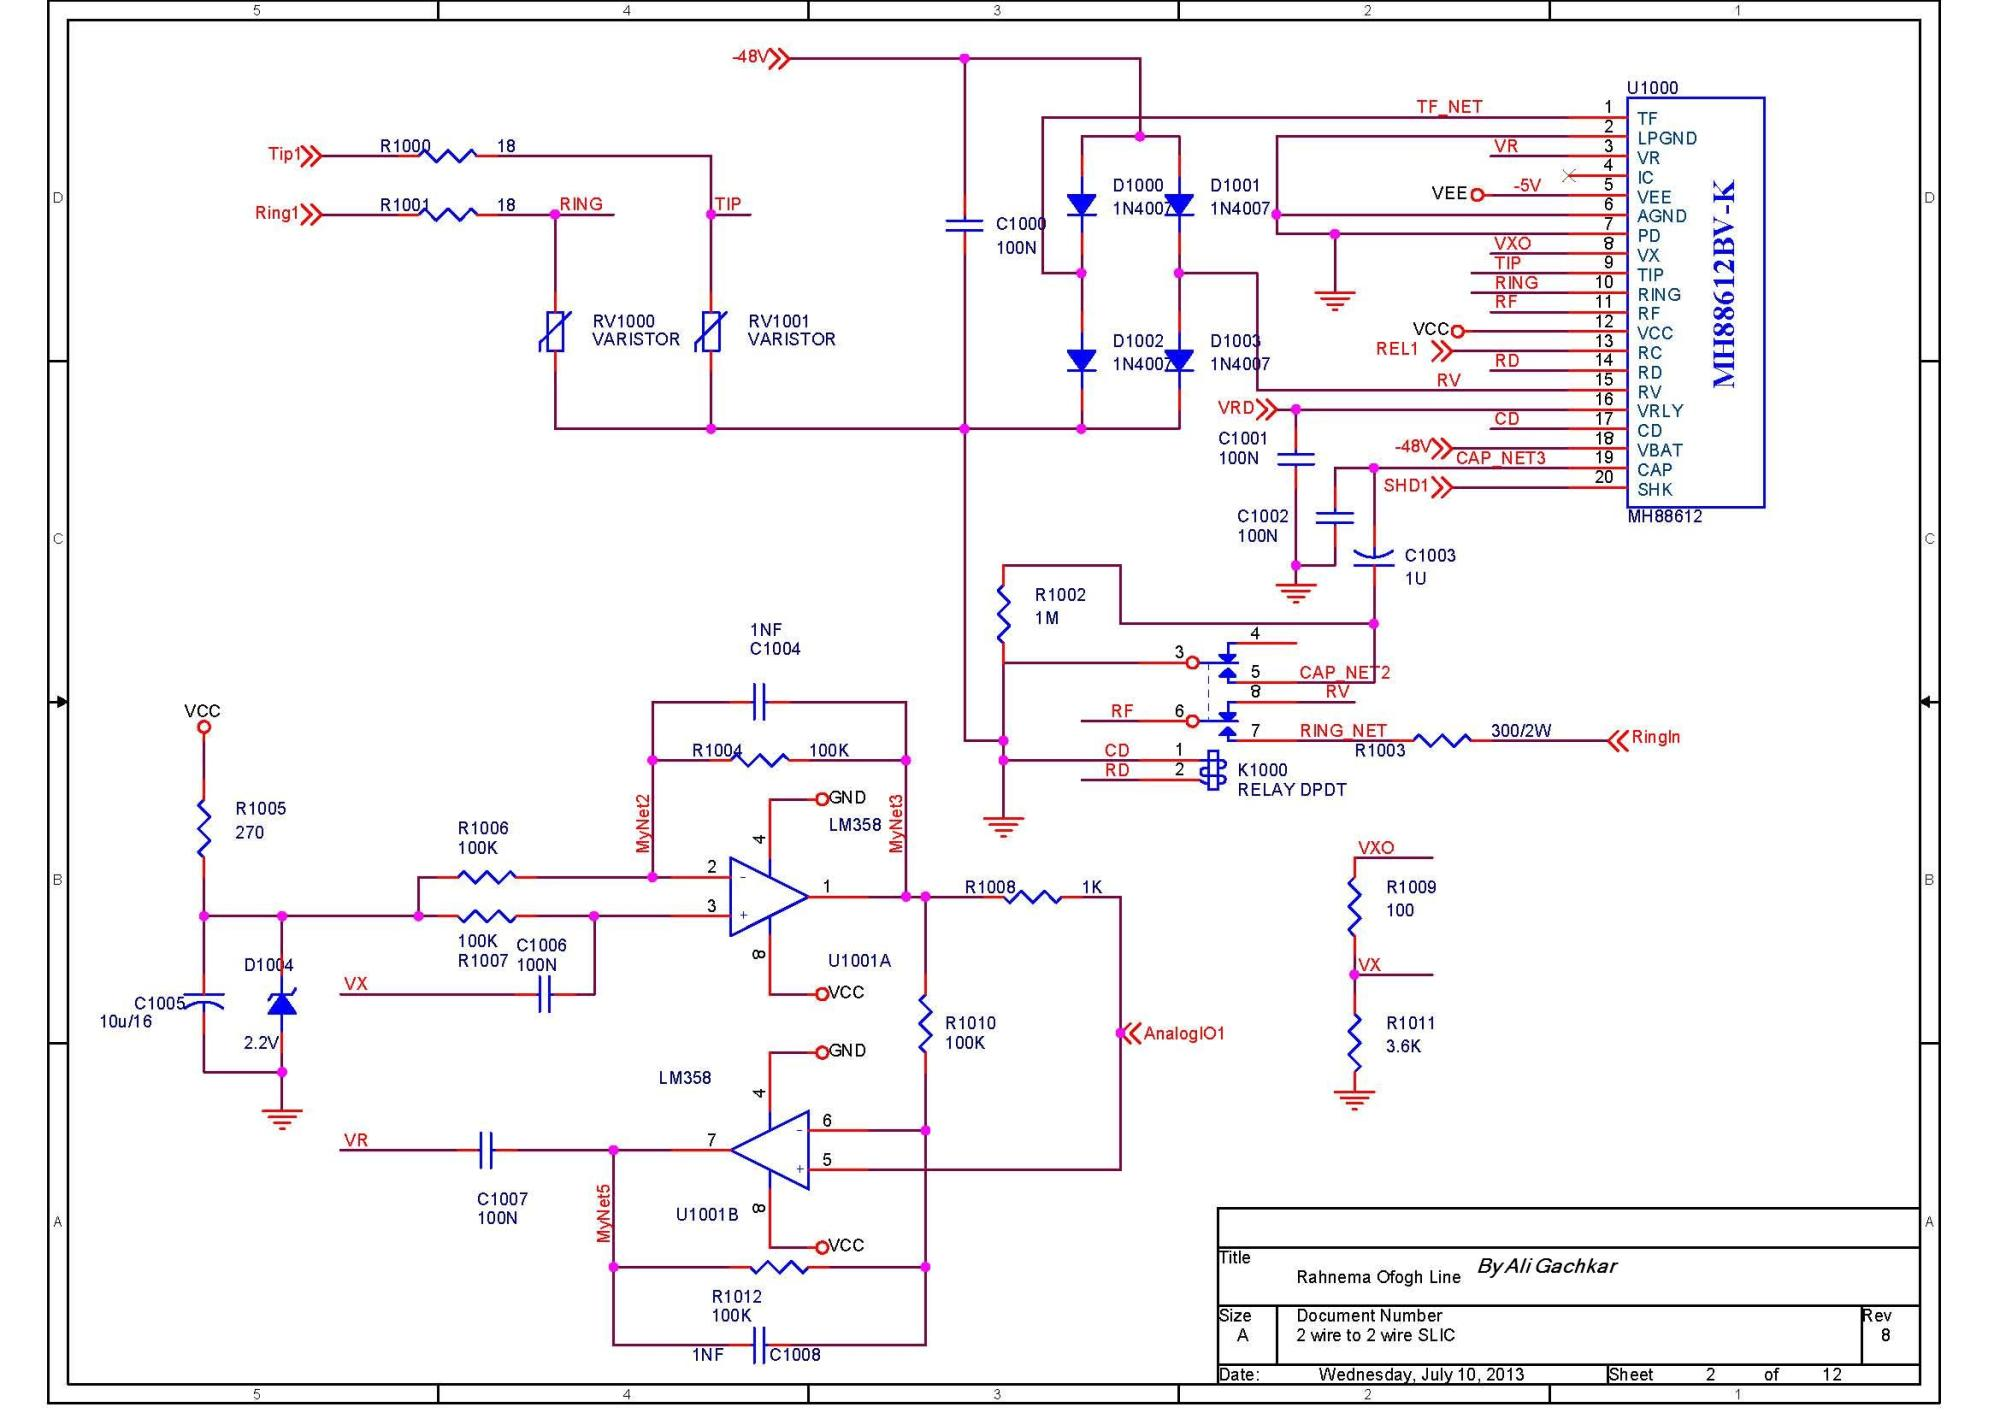 hight resolution of file 2 wire to 2 wire line interface with mh88612 jpg